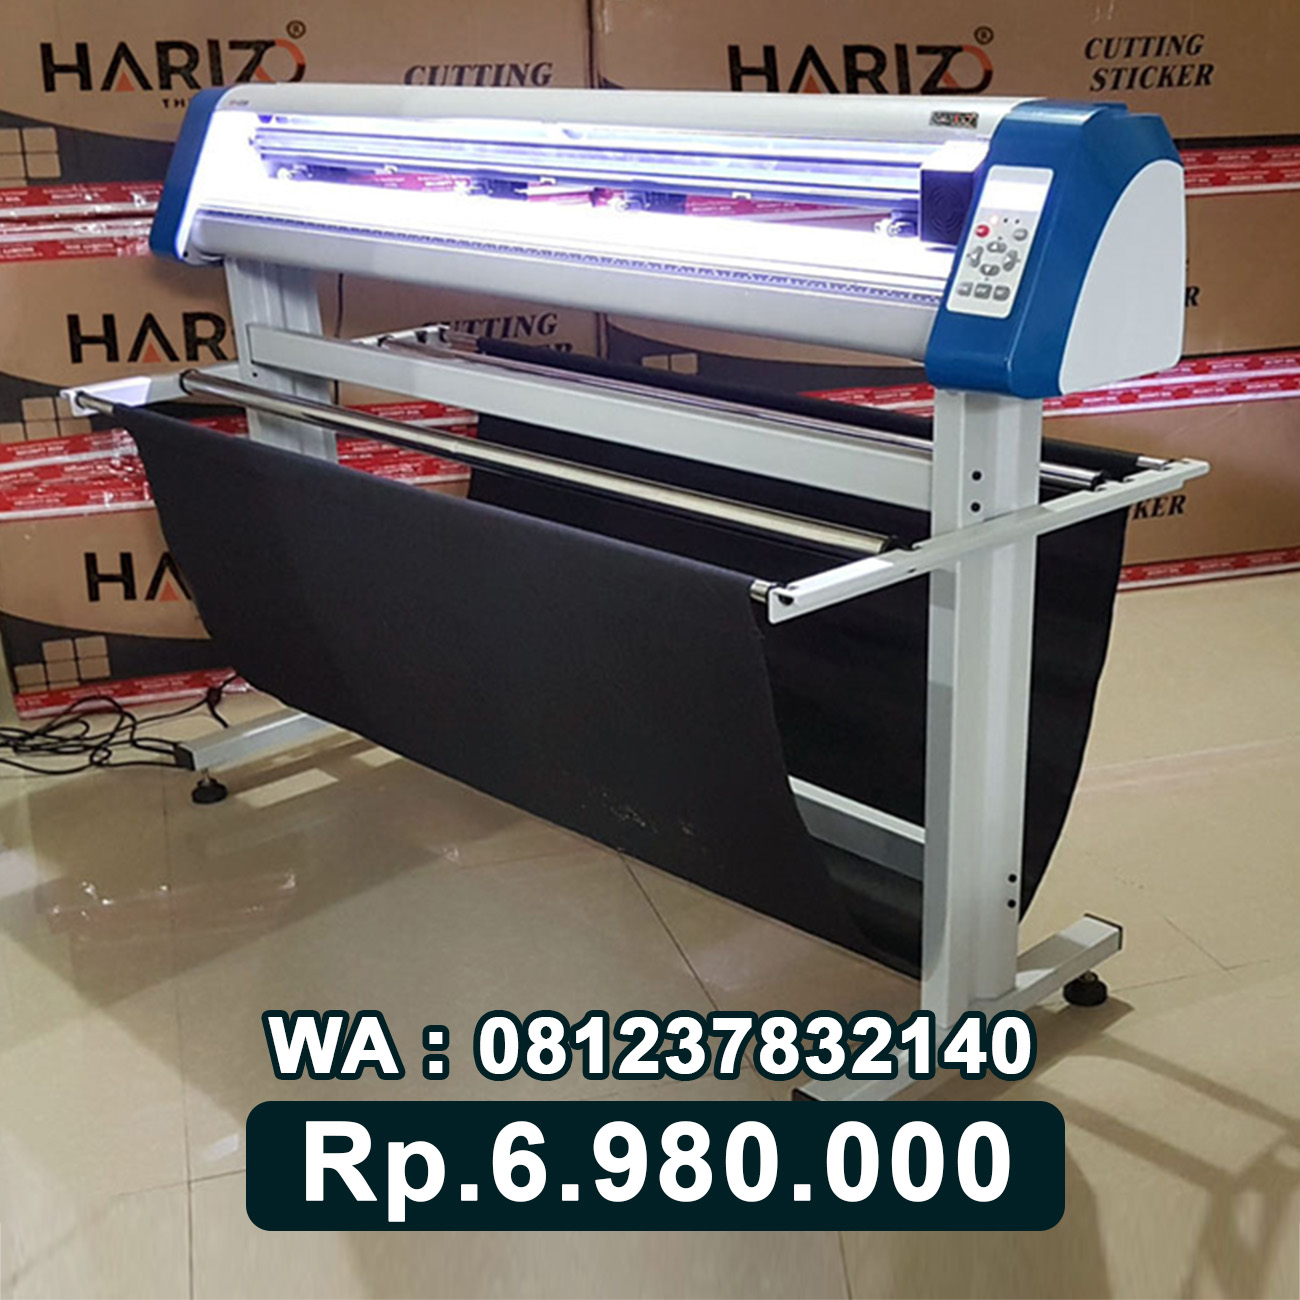 JUAL MESIN CUTTING STICKER HARIZO 1350 Bima